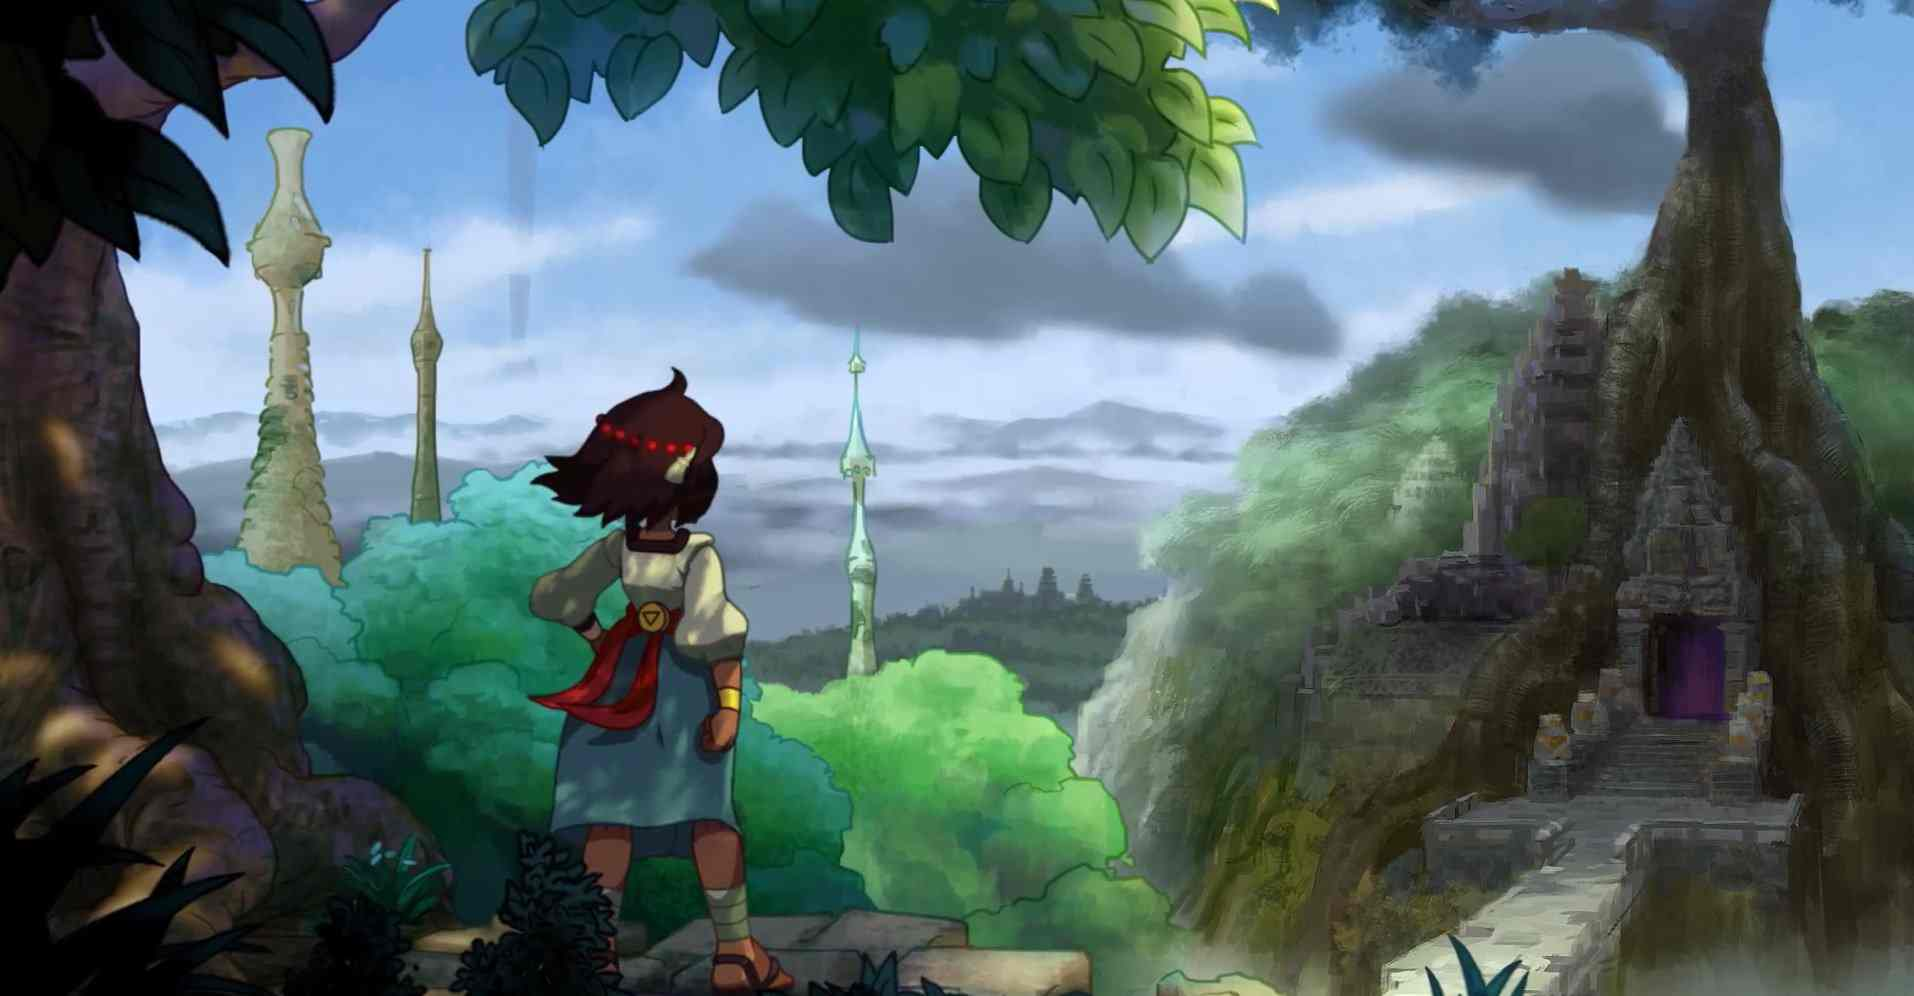 Videoimpresiones + Gameplay: Indivisible (Prototype)